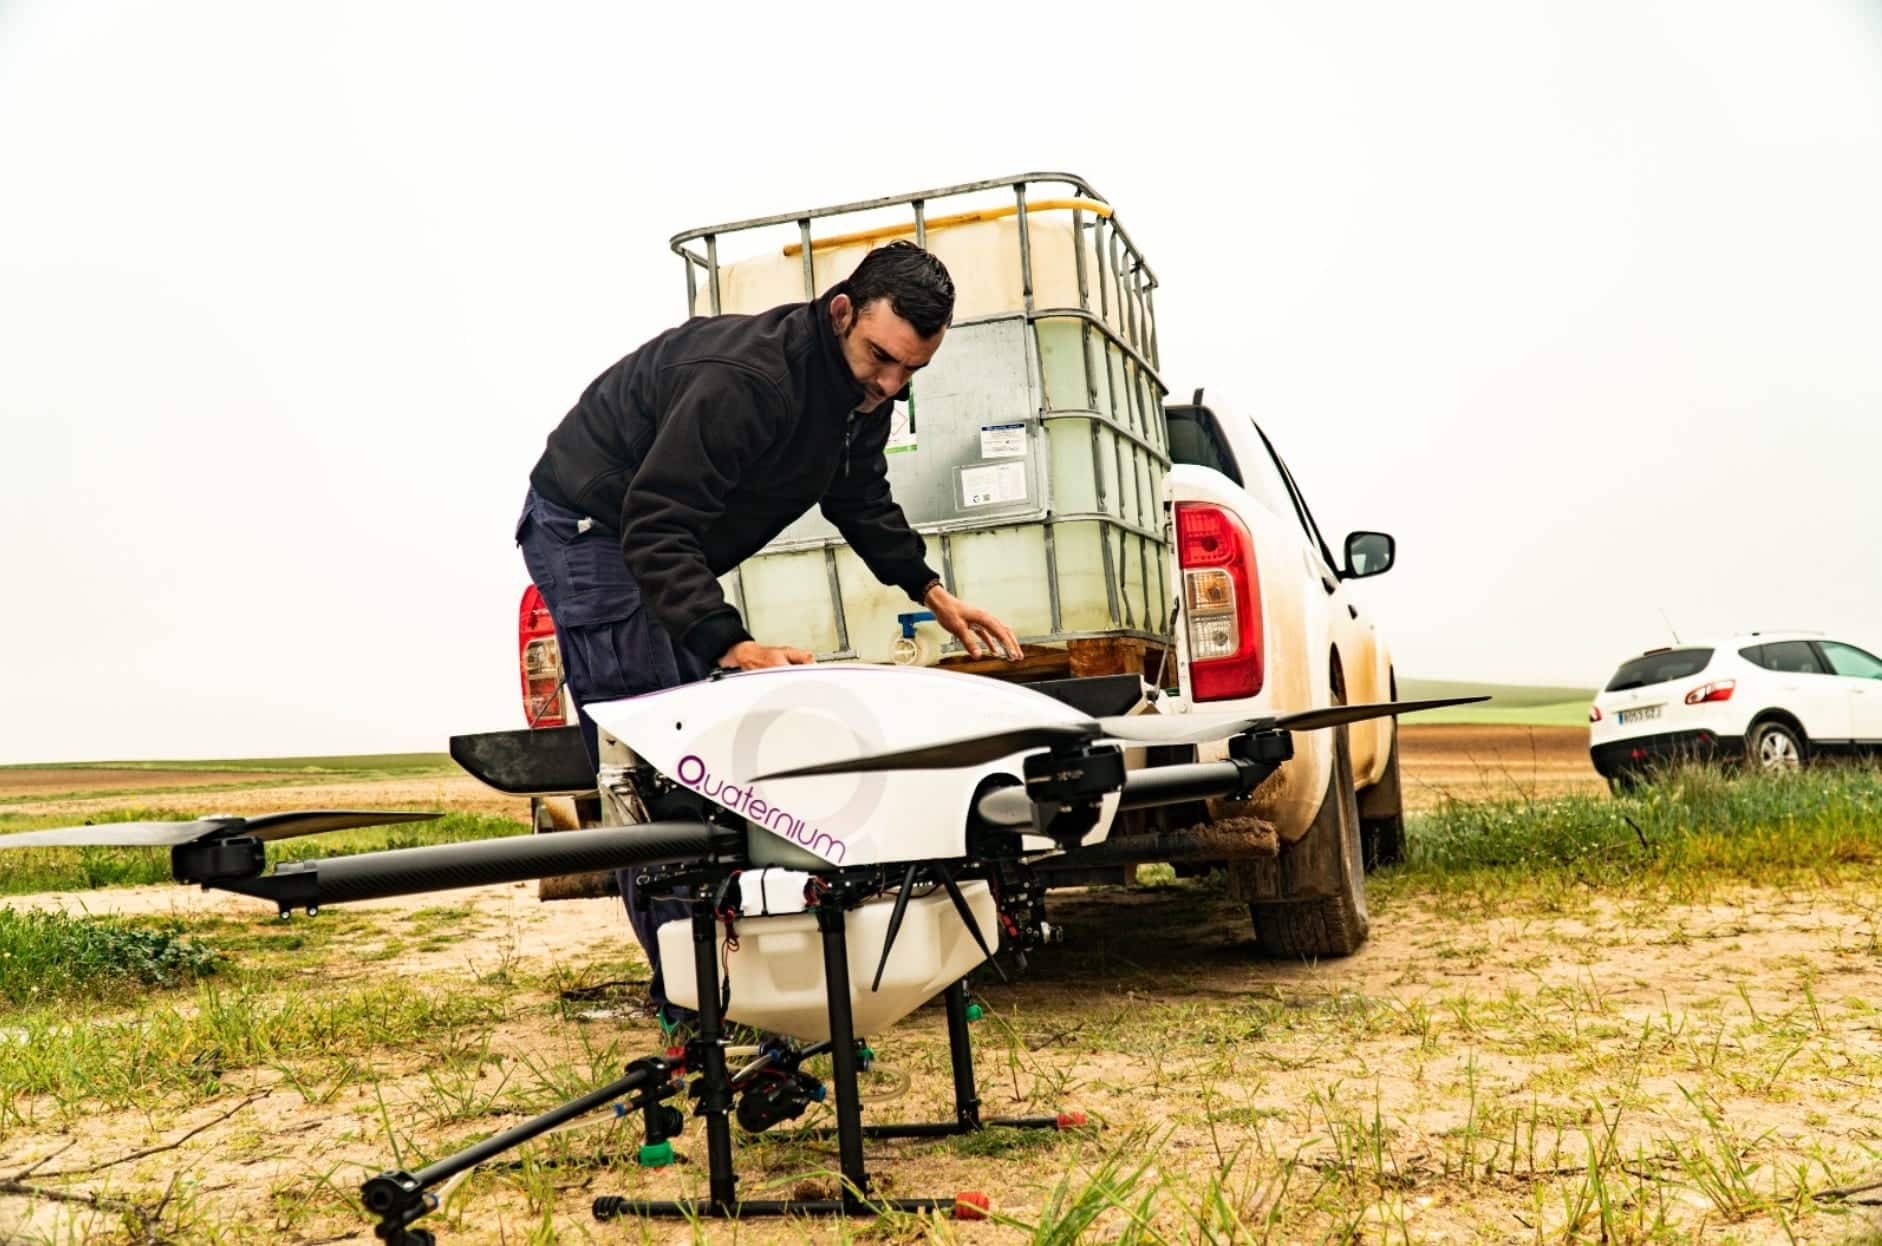 Quaternium HYBRiX drone opens new opportunities for farmers